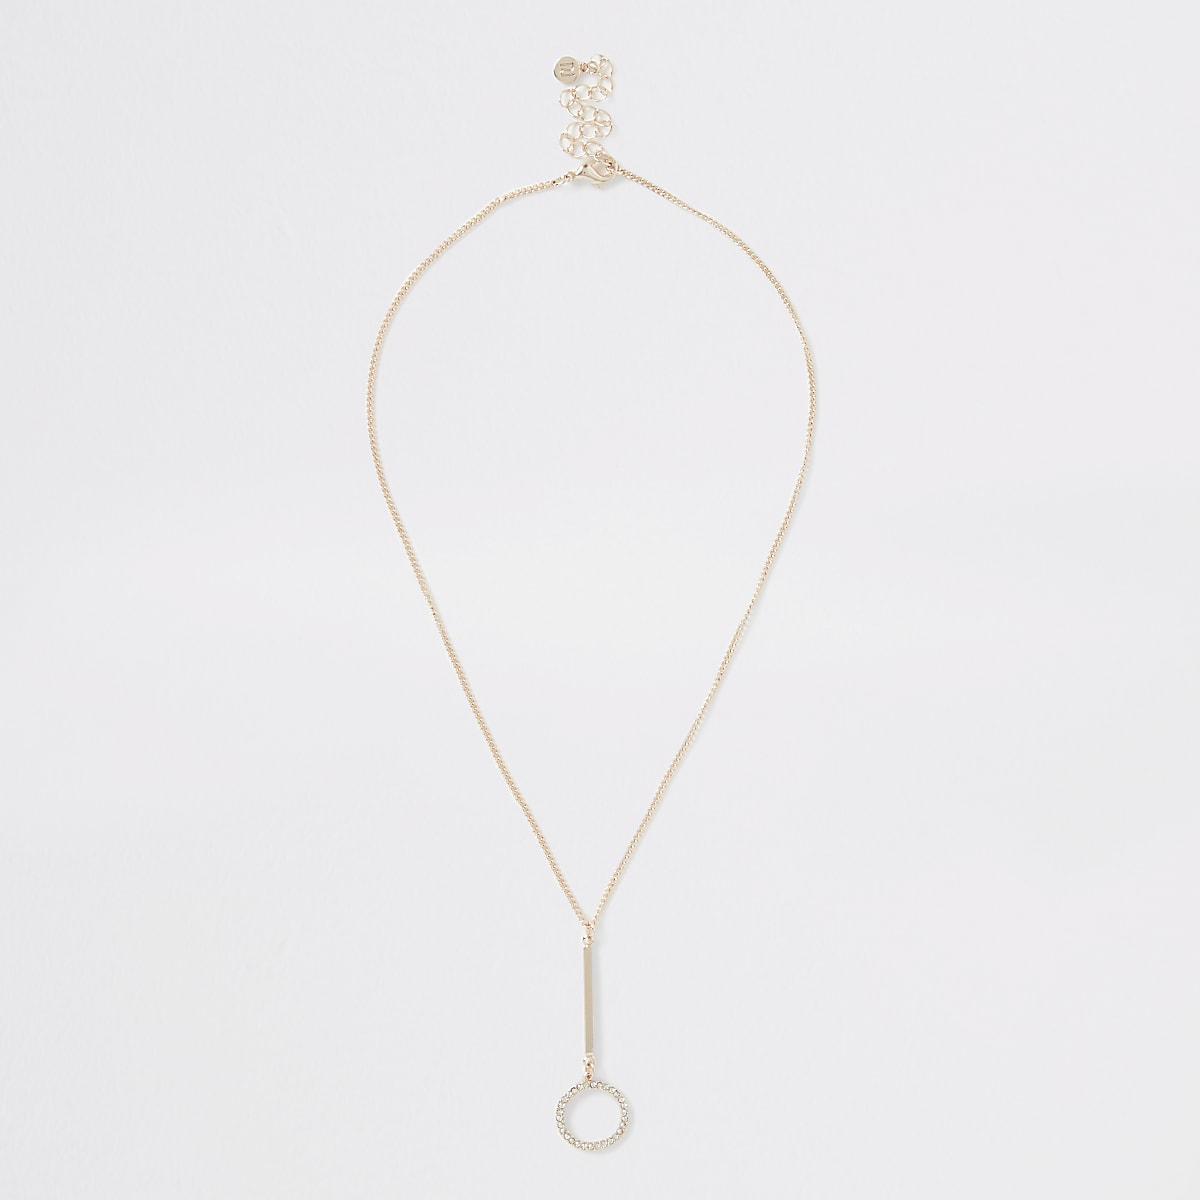 Rose gold diamante pave ring necklace